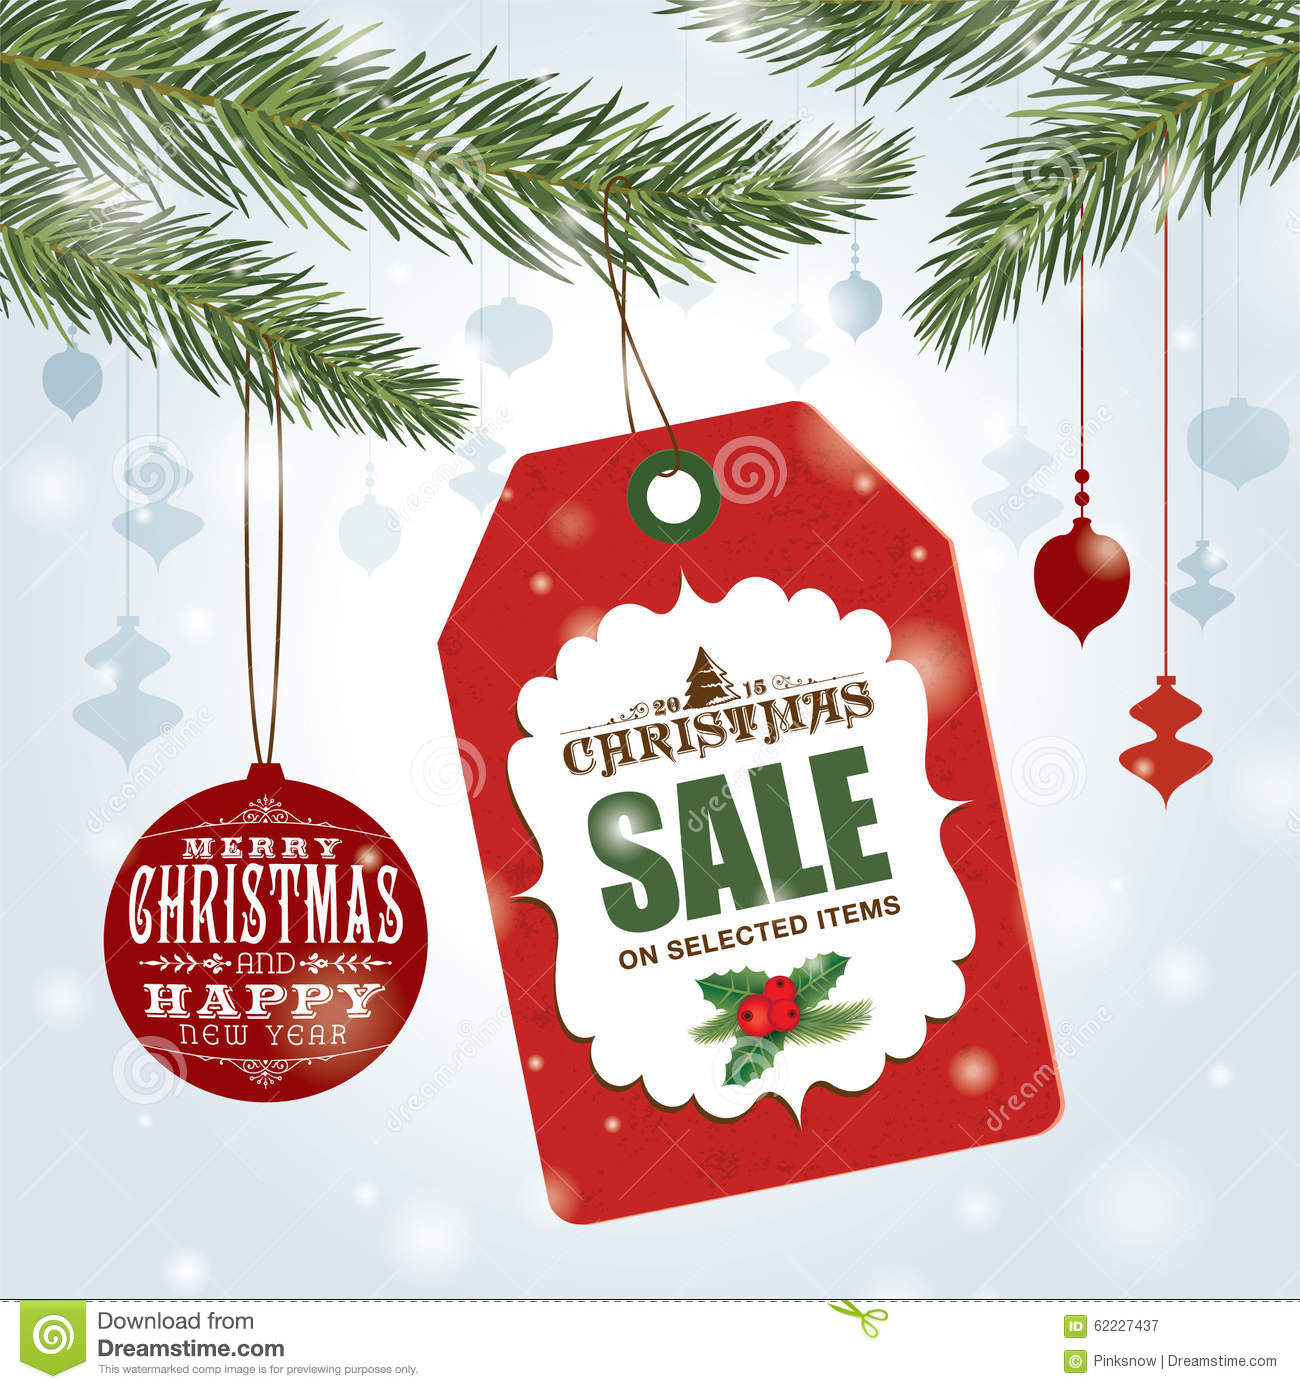 christmas sale poster stock vector illustration of greeting 62227437. Black Bedroom Furniture Sets. Home Design Ideas